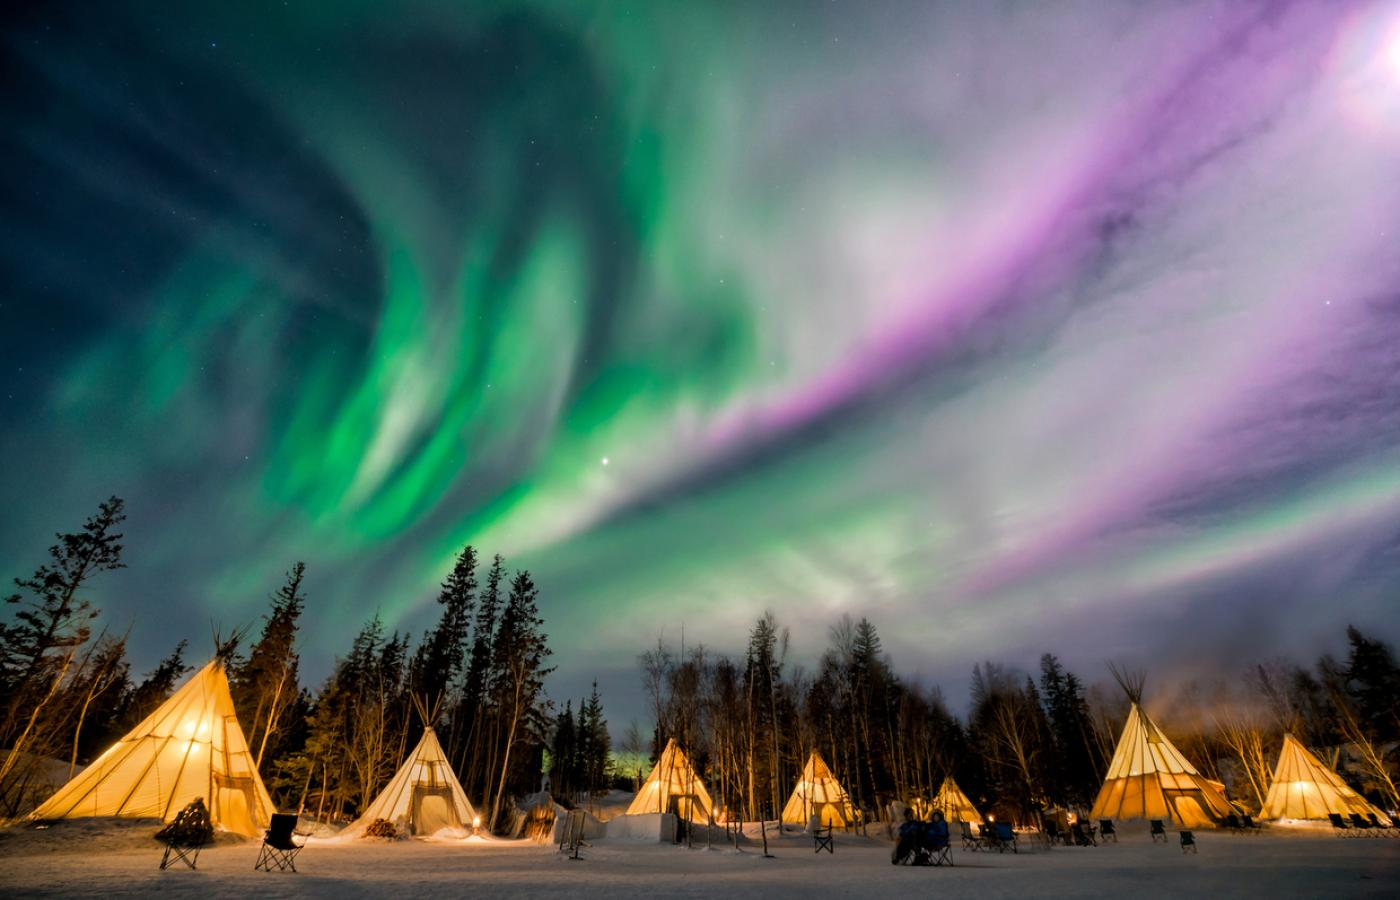 The Northern Lights above Aurora Village's teepee accommodations outside of Yellowknife, Northwest Territories, Canada